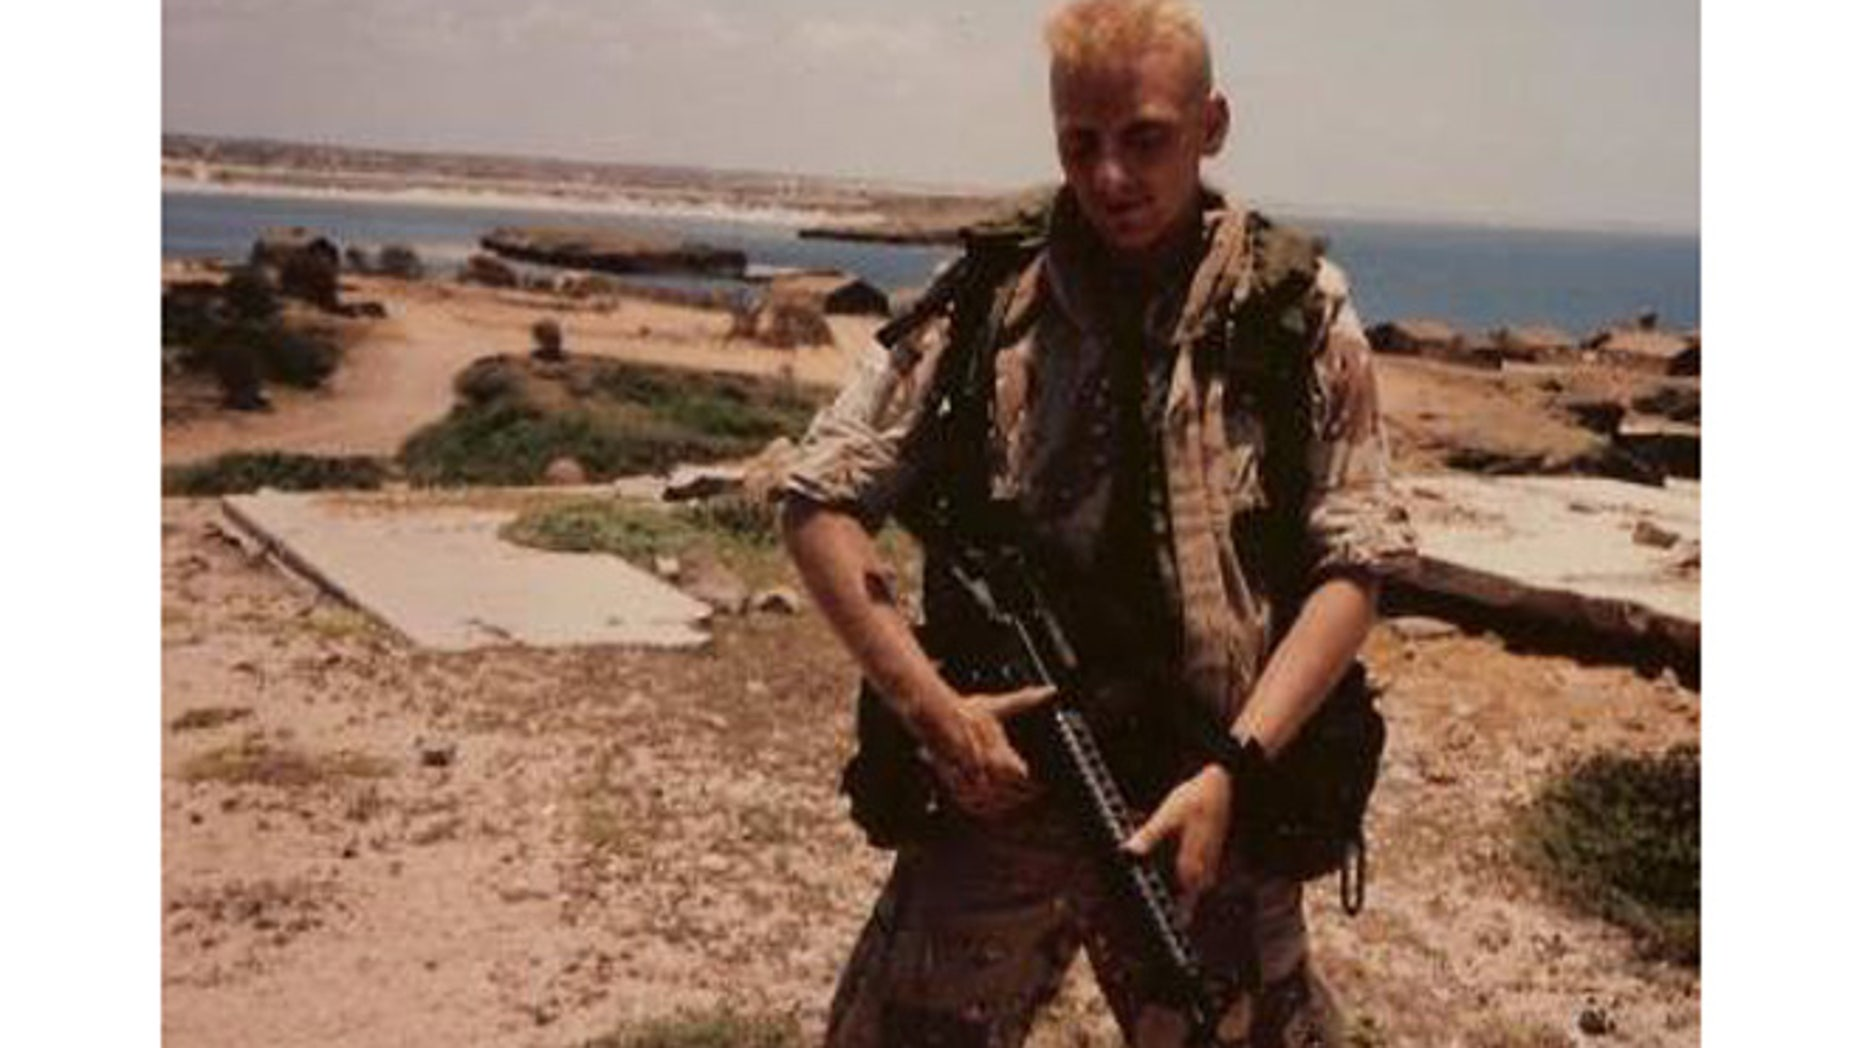 Anthony Hardie, 48, who suffers from Gulf War Illness, is pictured here in 1991.